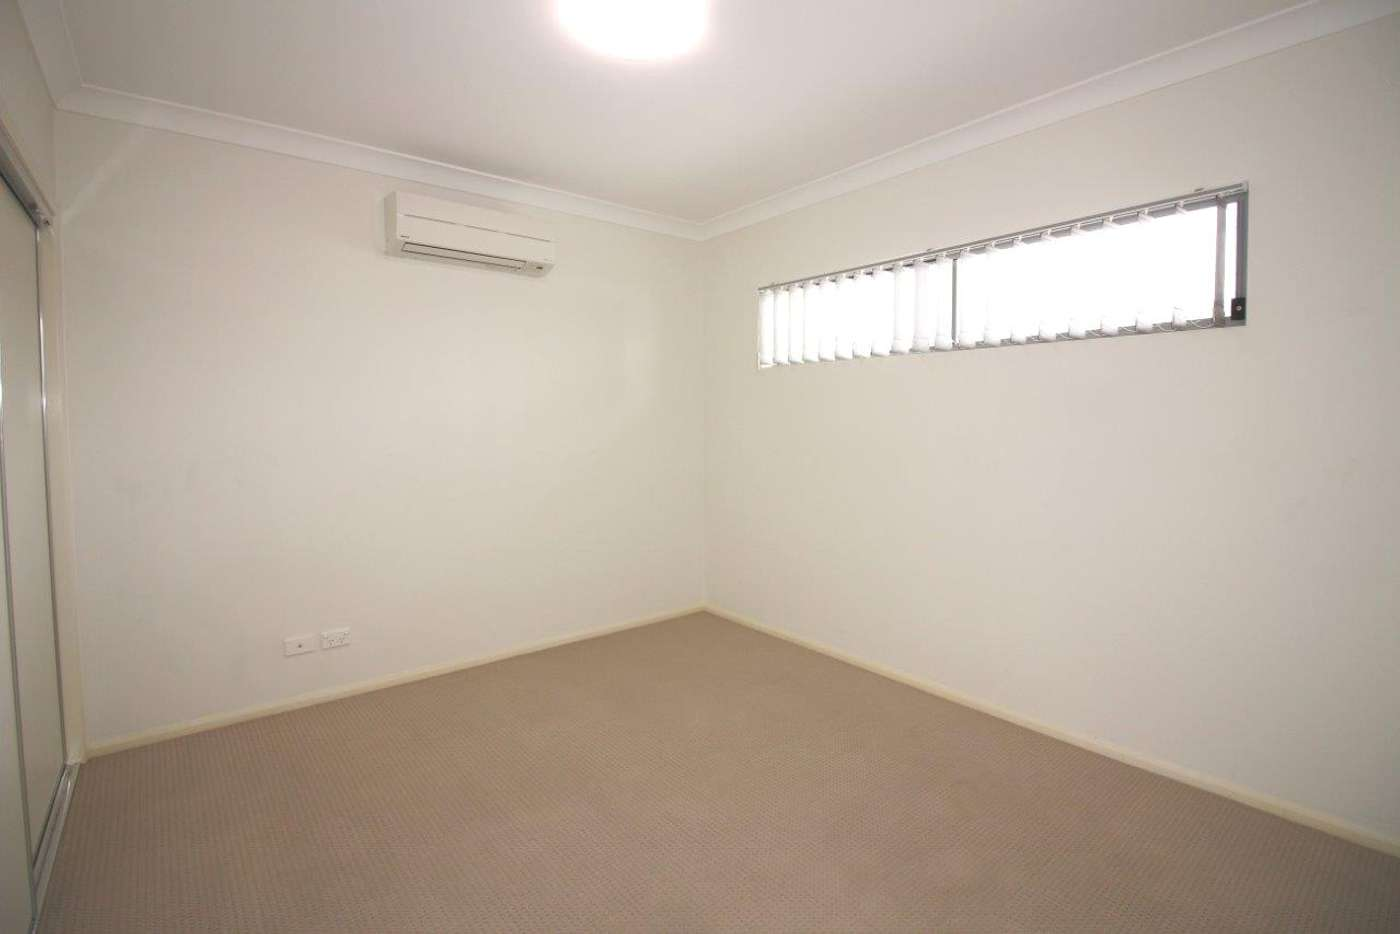 Sixth view of Homely house listing, 27/35 Seeney Street, Zillmere QLD 4034